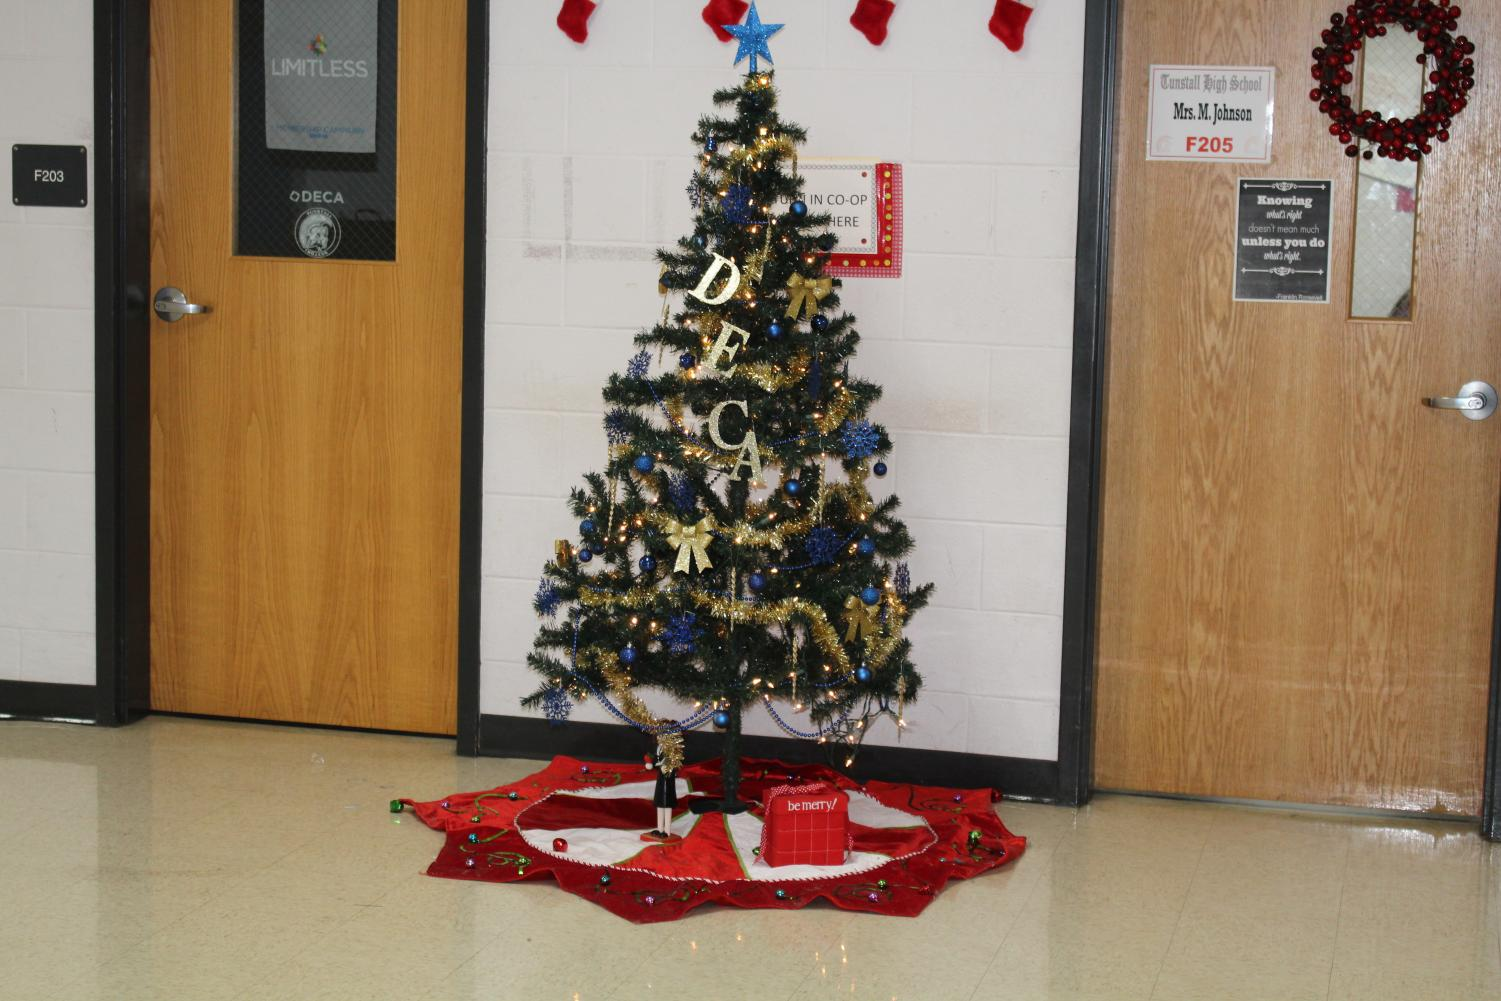 Deca christmas tree outside of the Deca office on F wing.